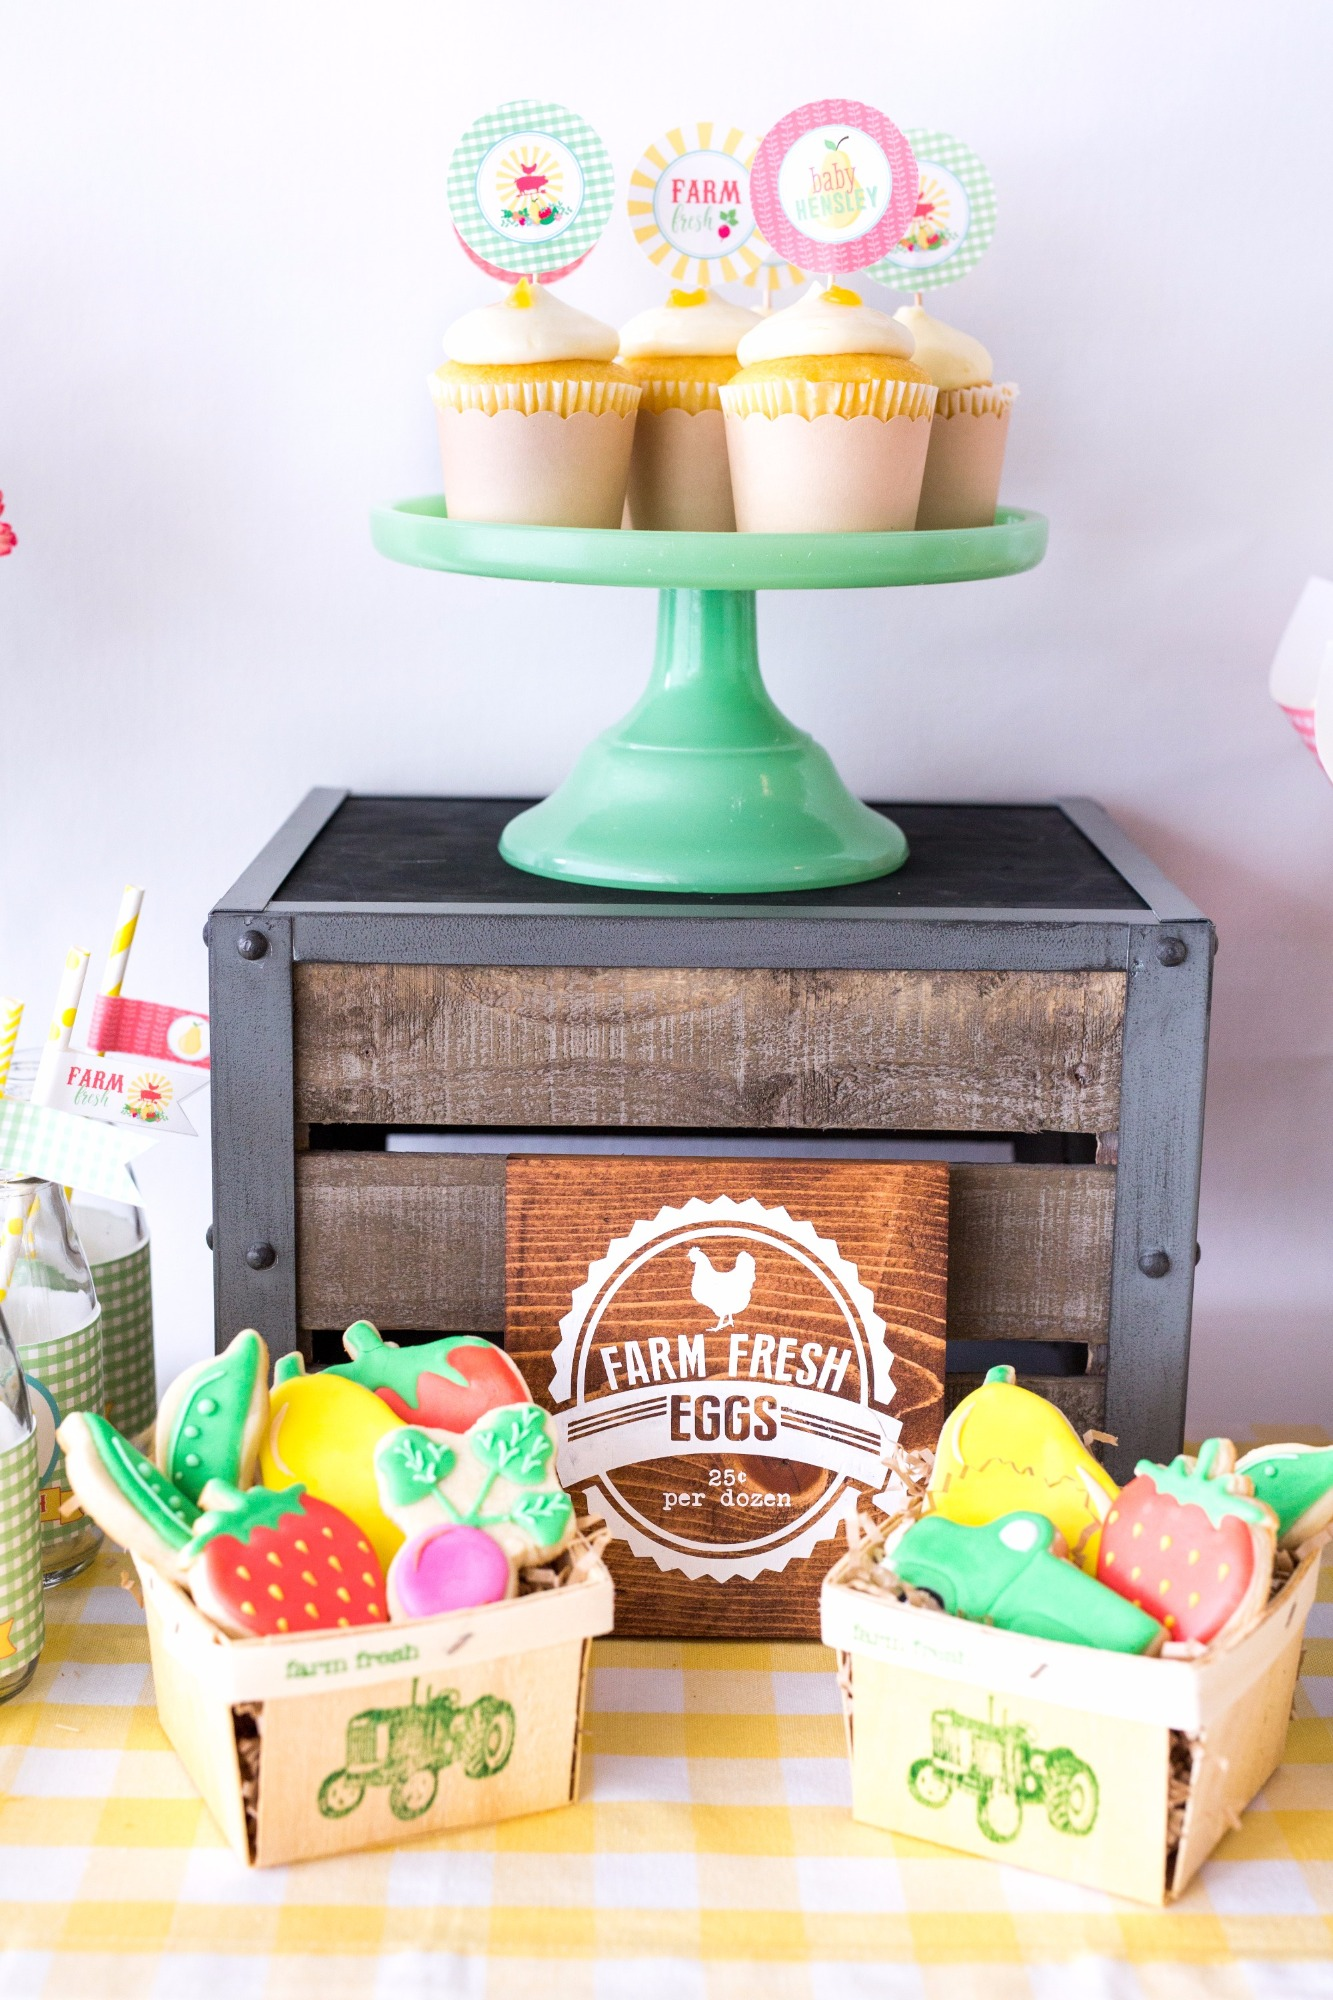 Cupcakes and Fruit & Veggie Cookies from Farm Fresh Baby Shower Styled by Black Twine